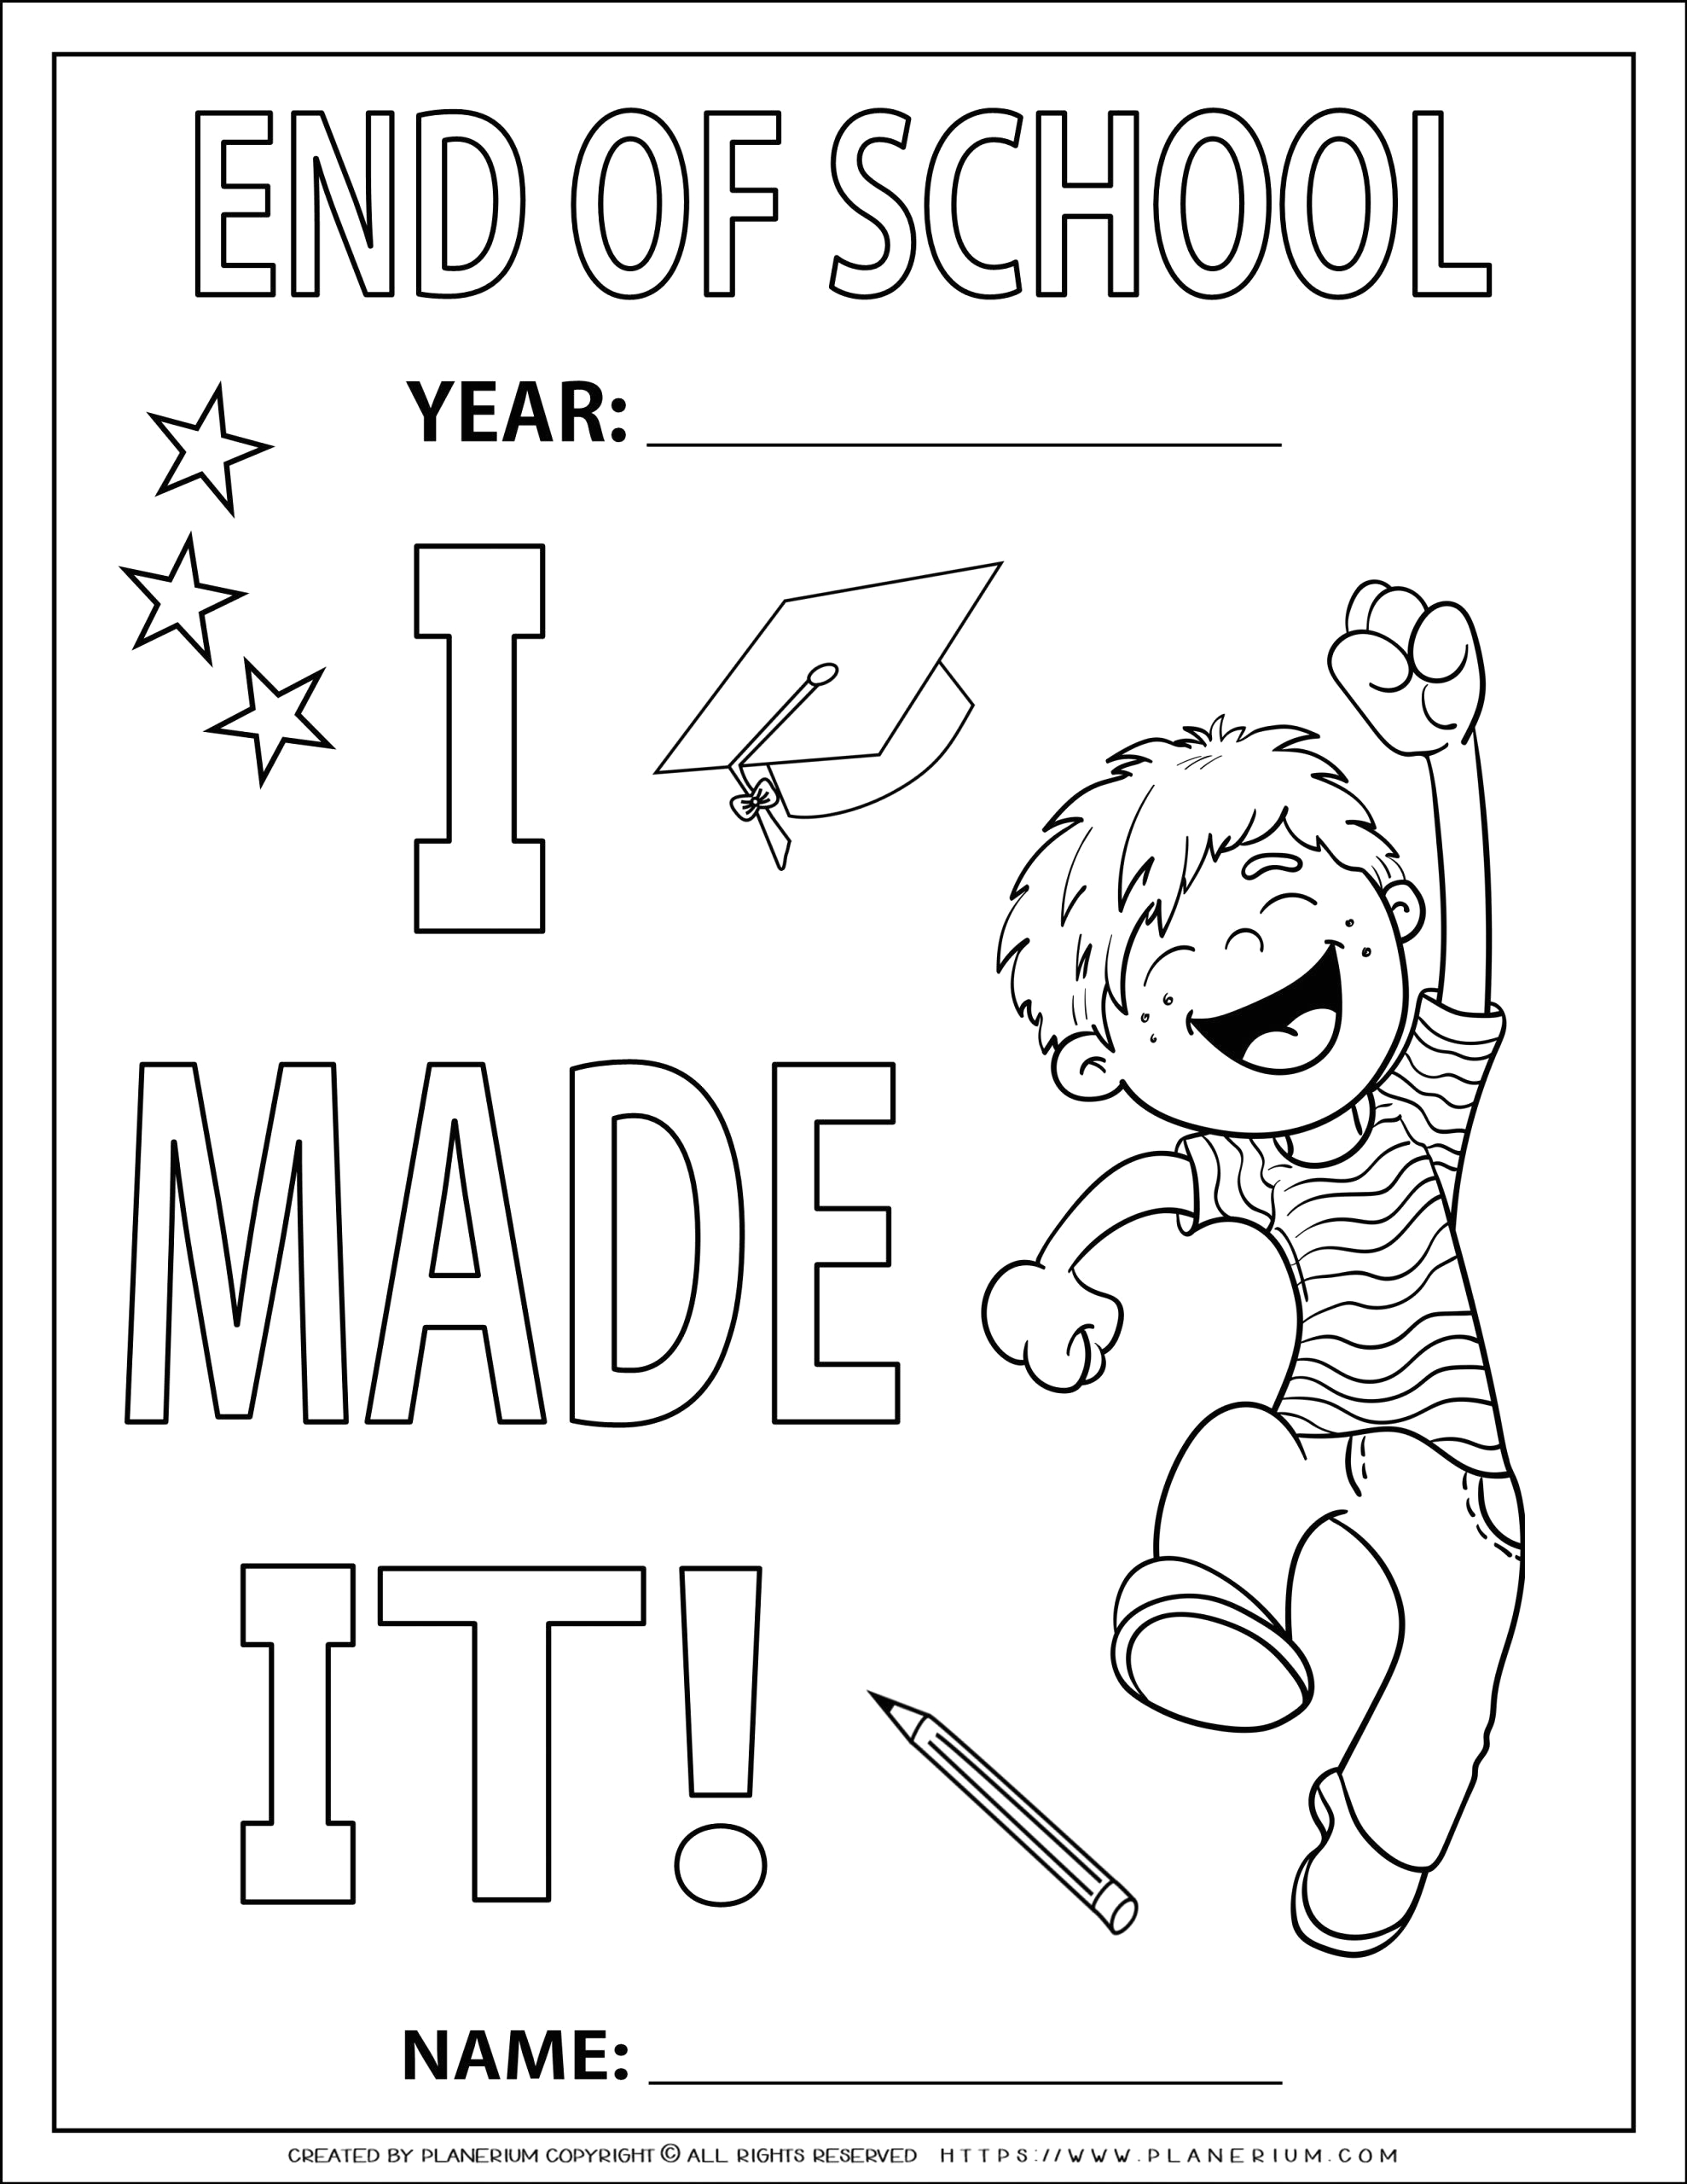 Free End Of School Year Coloring Pages End Of Year Coloring Page I Made It for A Boy